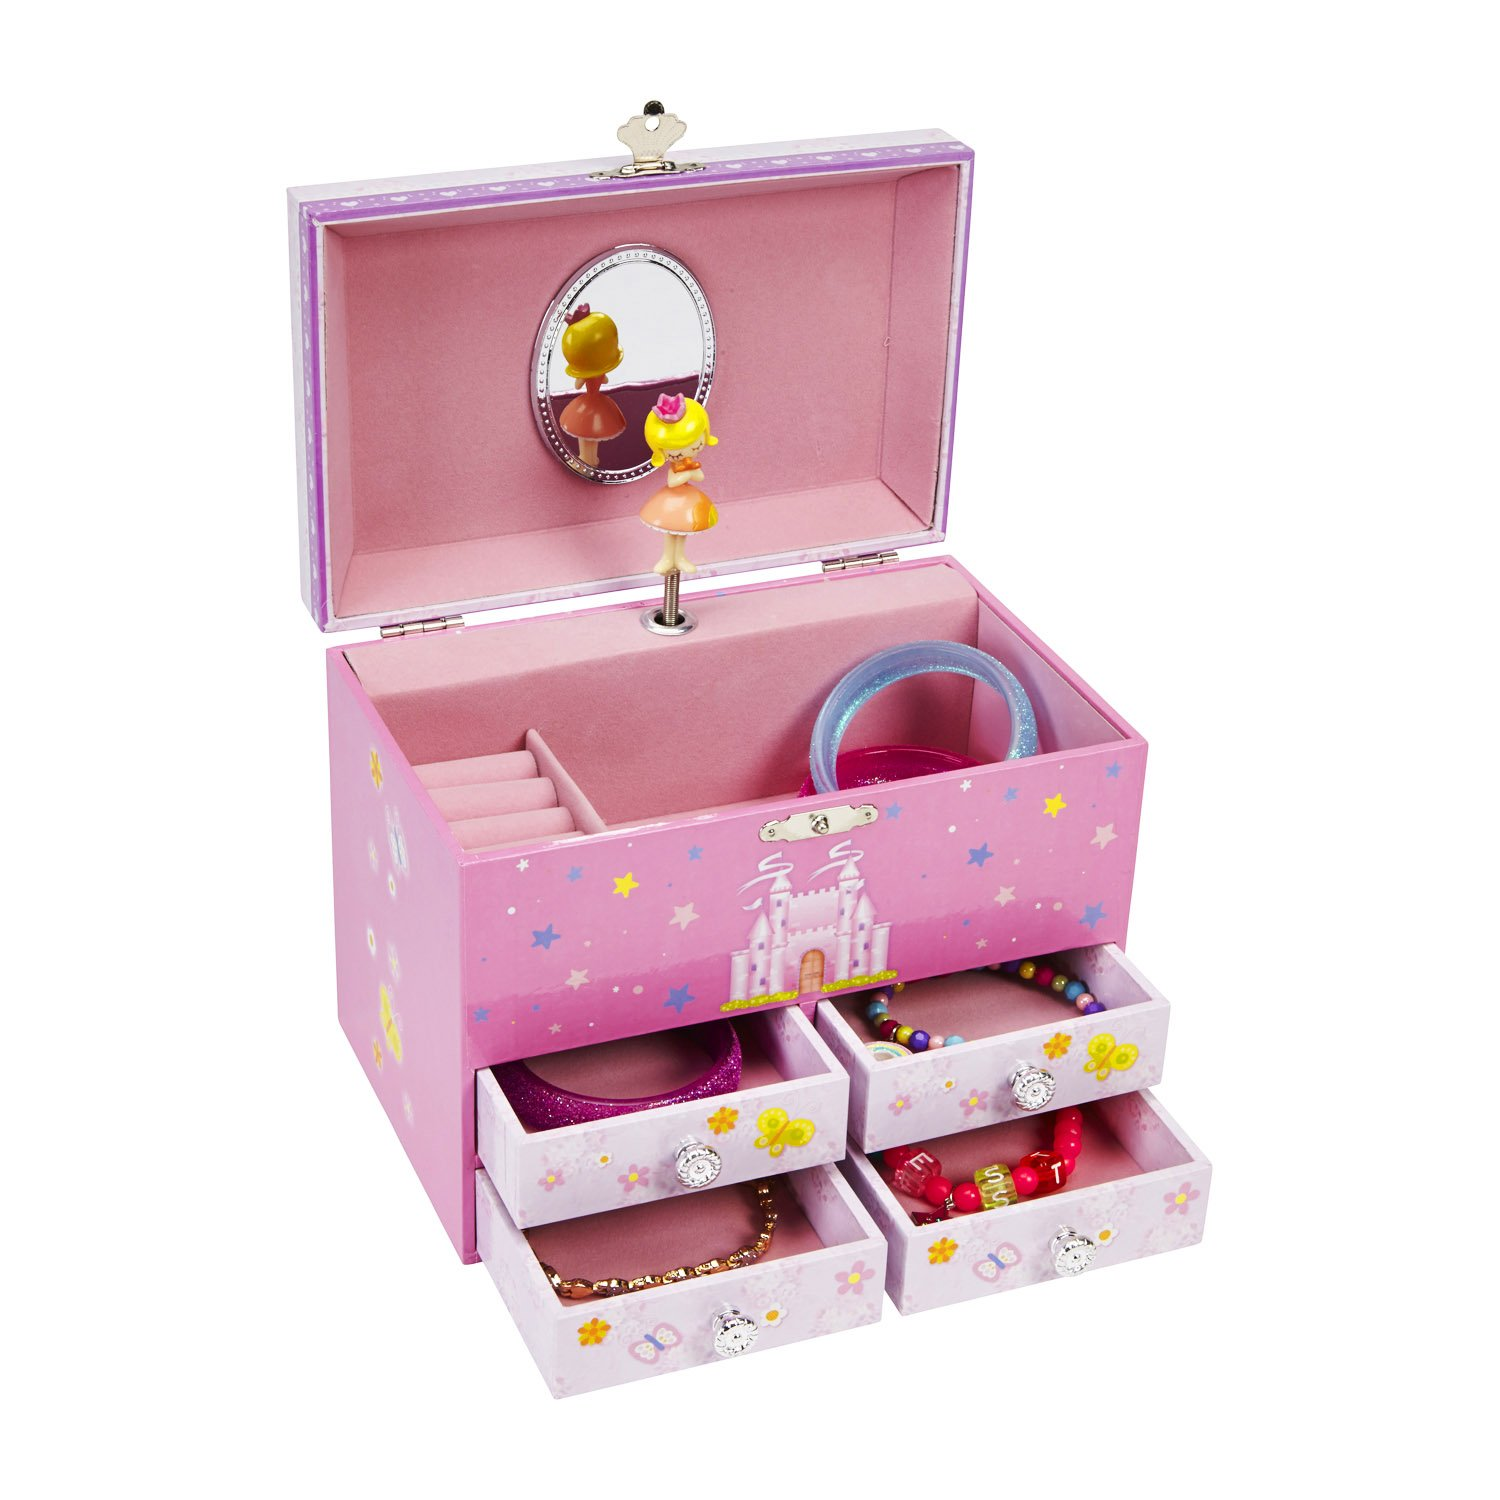 JewelKeeper Princess and a Castle Large Musical Jewelry Storage Box with 4 Pullout Drawers, Girl's Storage Case, The Spring Tune